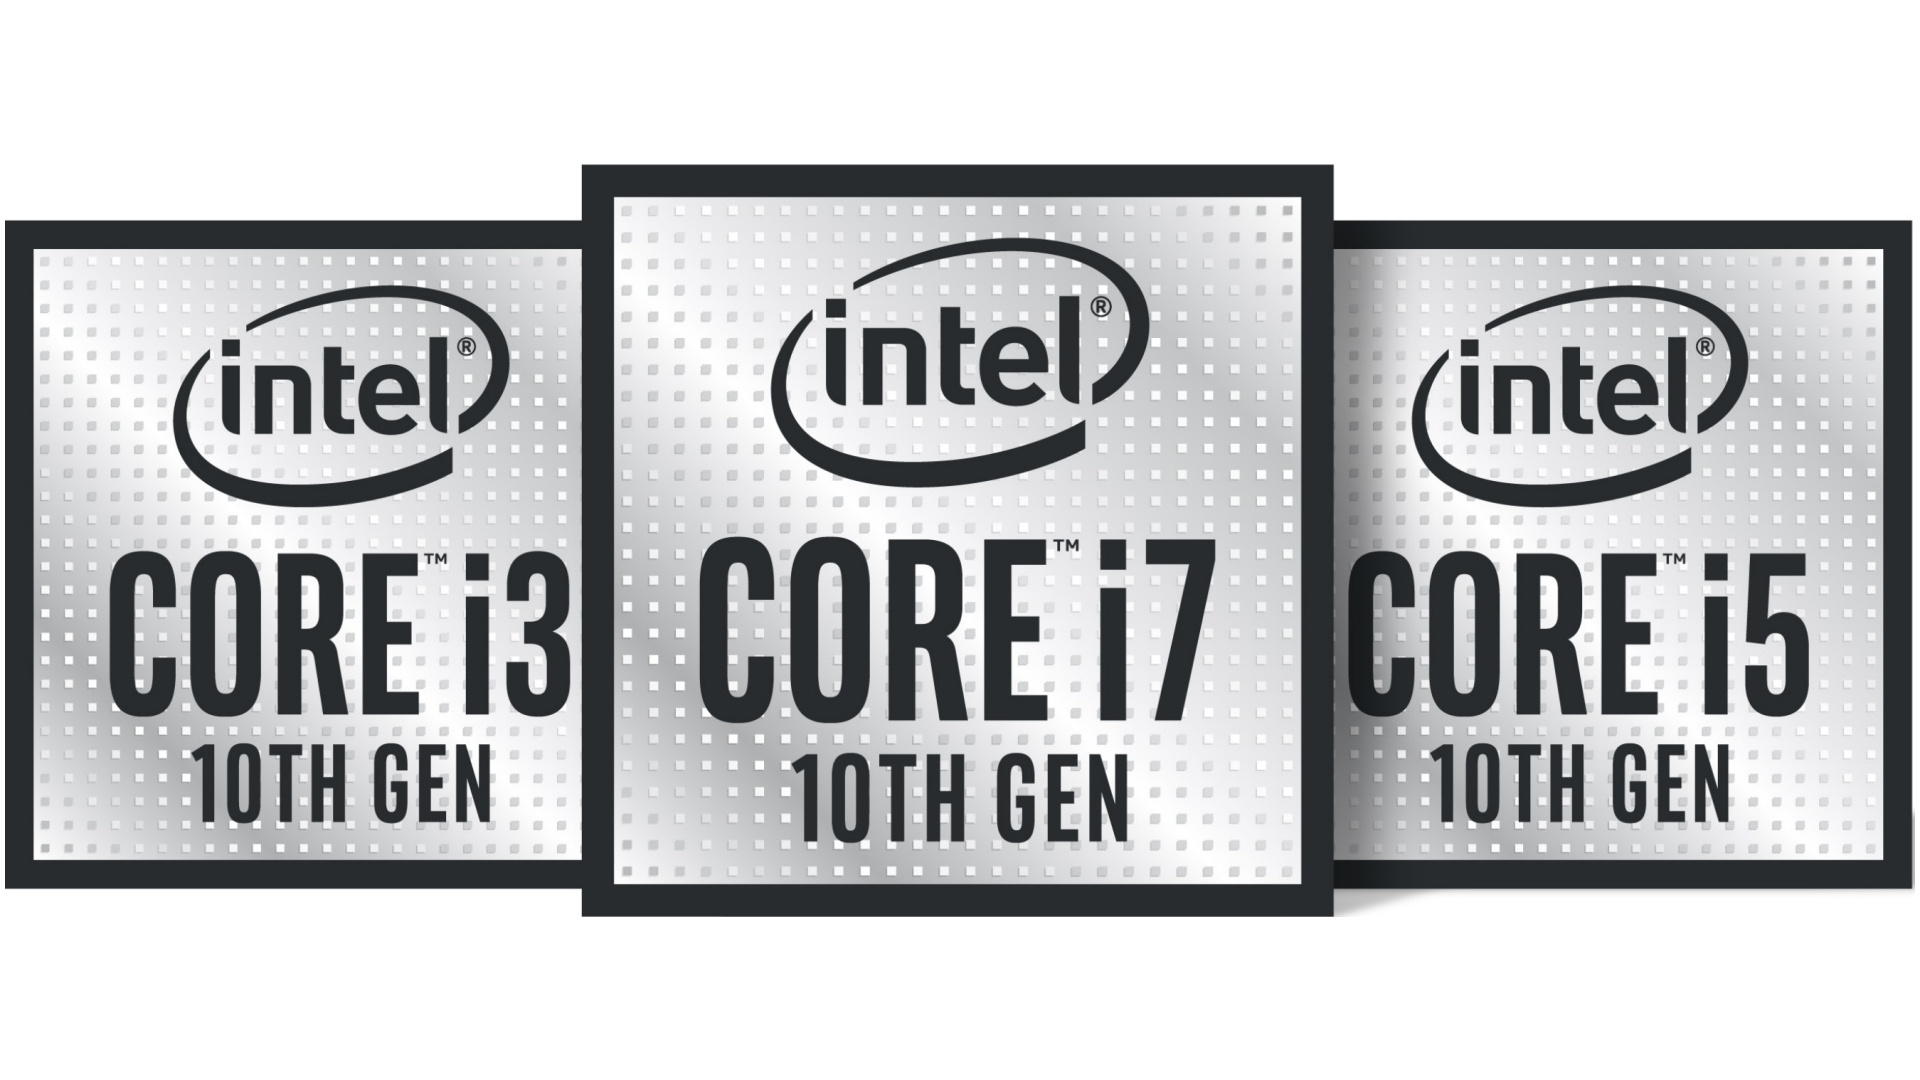 Intel updates 10th Gen lineup with eight new Comet Lake